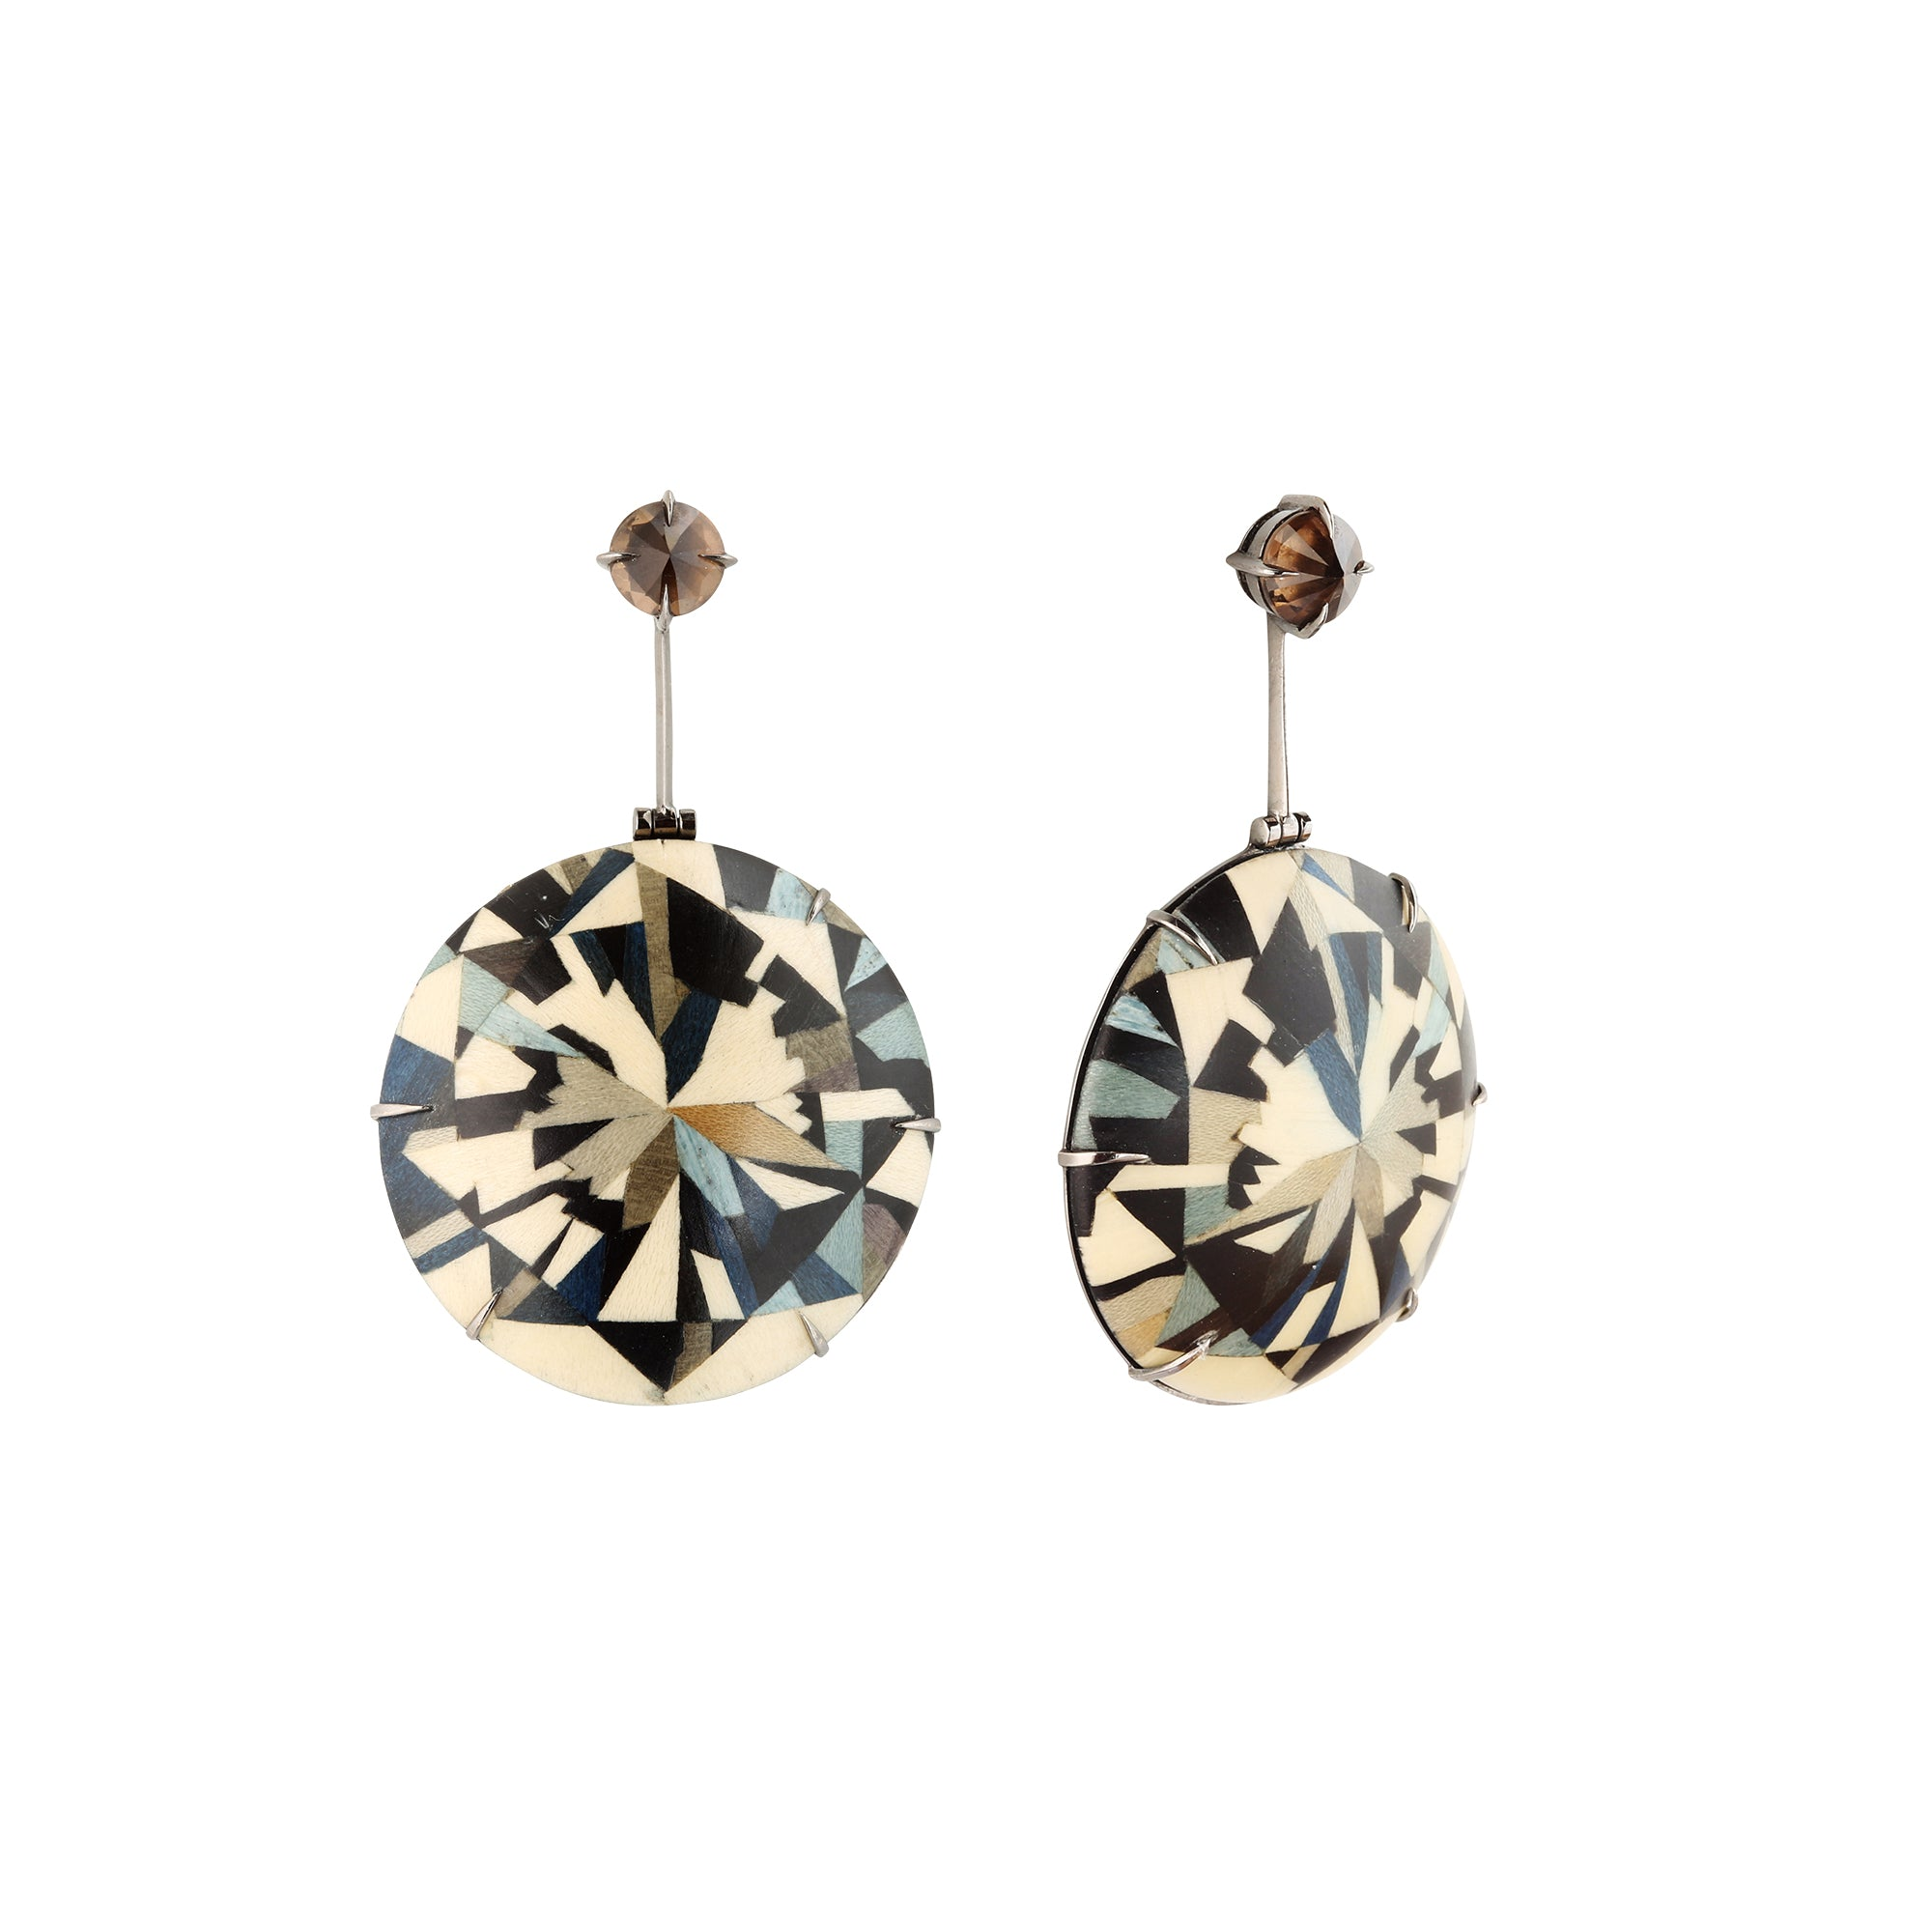 Wood Gold Quartz Marquetry Geometric Round Wood Earrings By Silvia Furmanovich For Broken English Jewlery